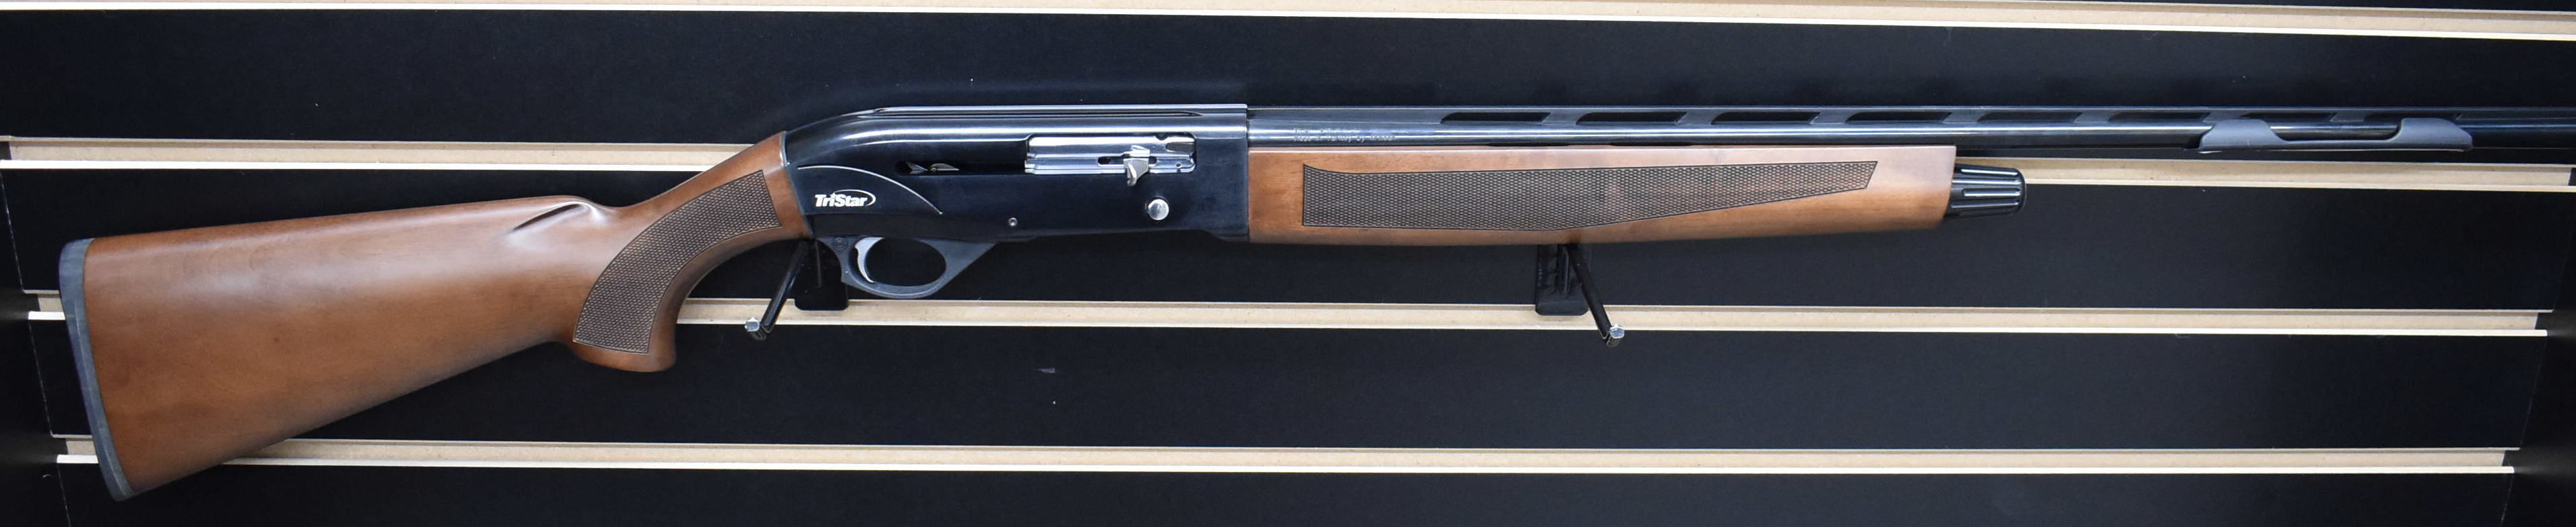 TRISTAR - VIPER G2 WOOD - SHOTGUN FIREARM